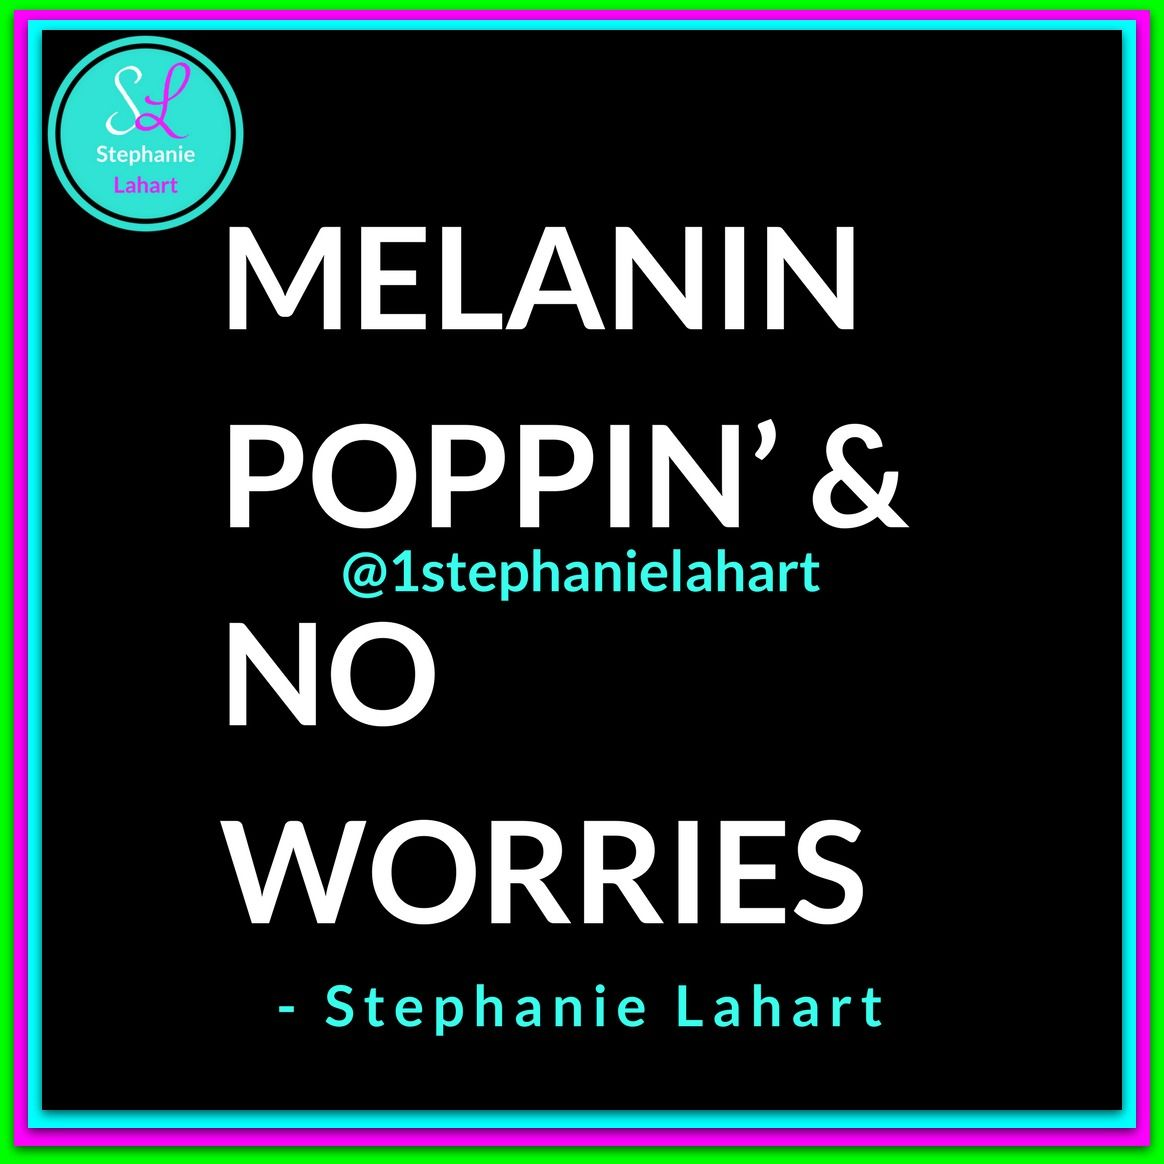 Melanin Quotes Melanin Poppin' And No Worries Quotesstephanie Lahart